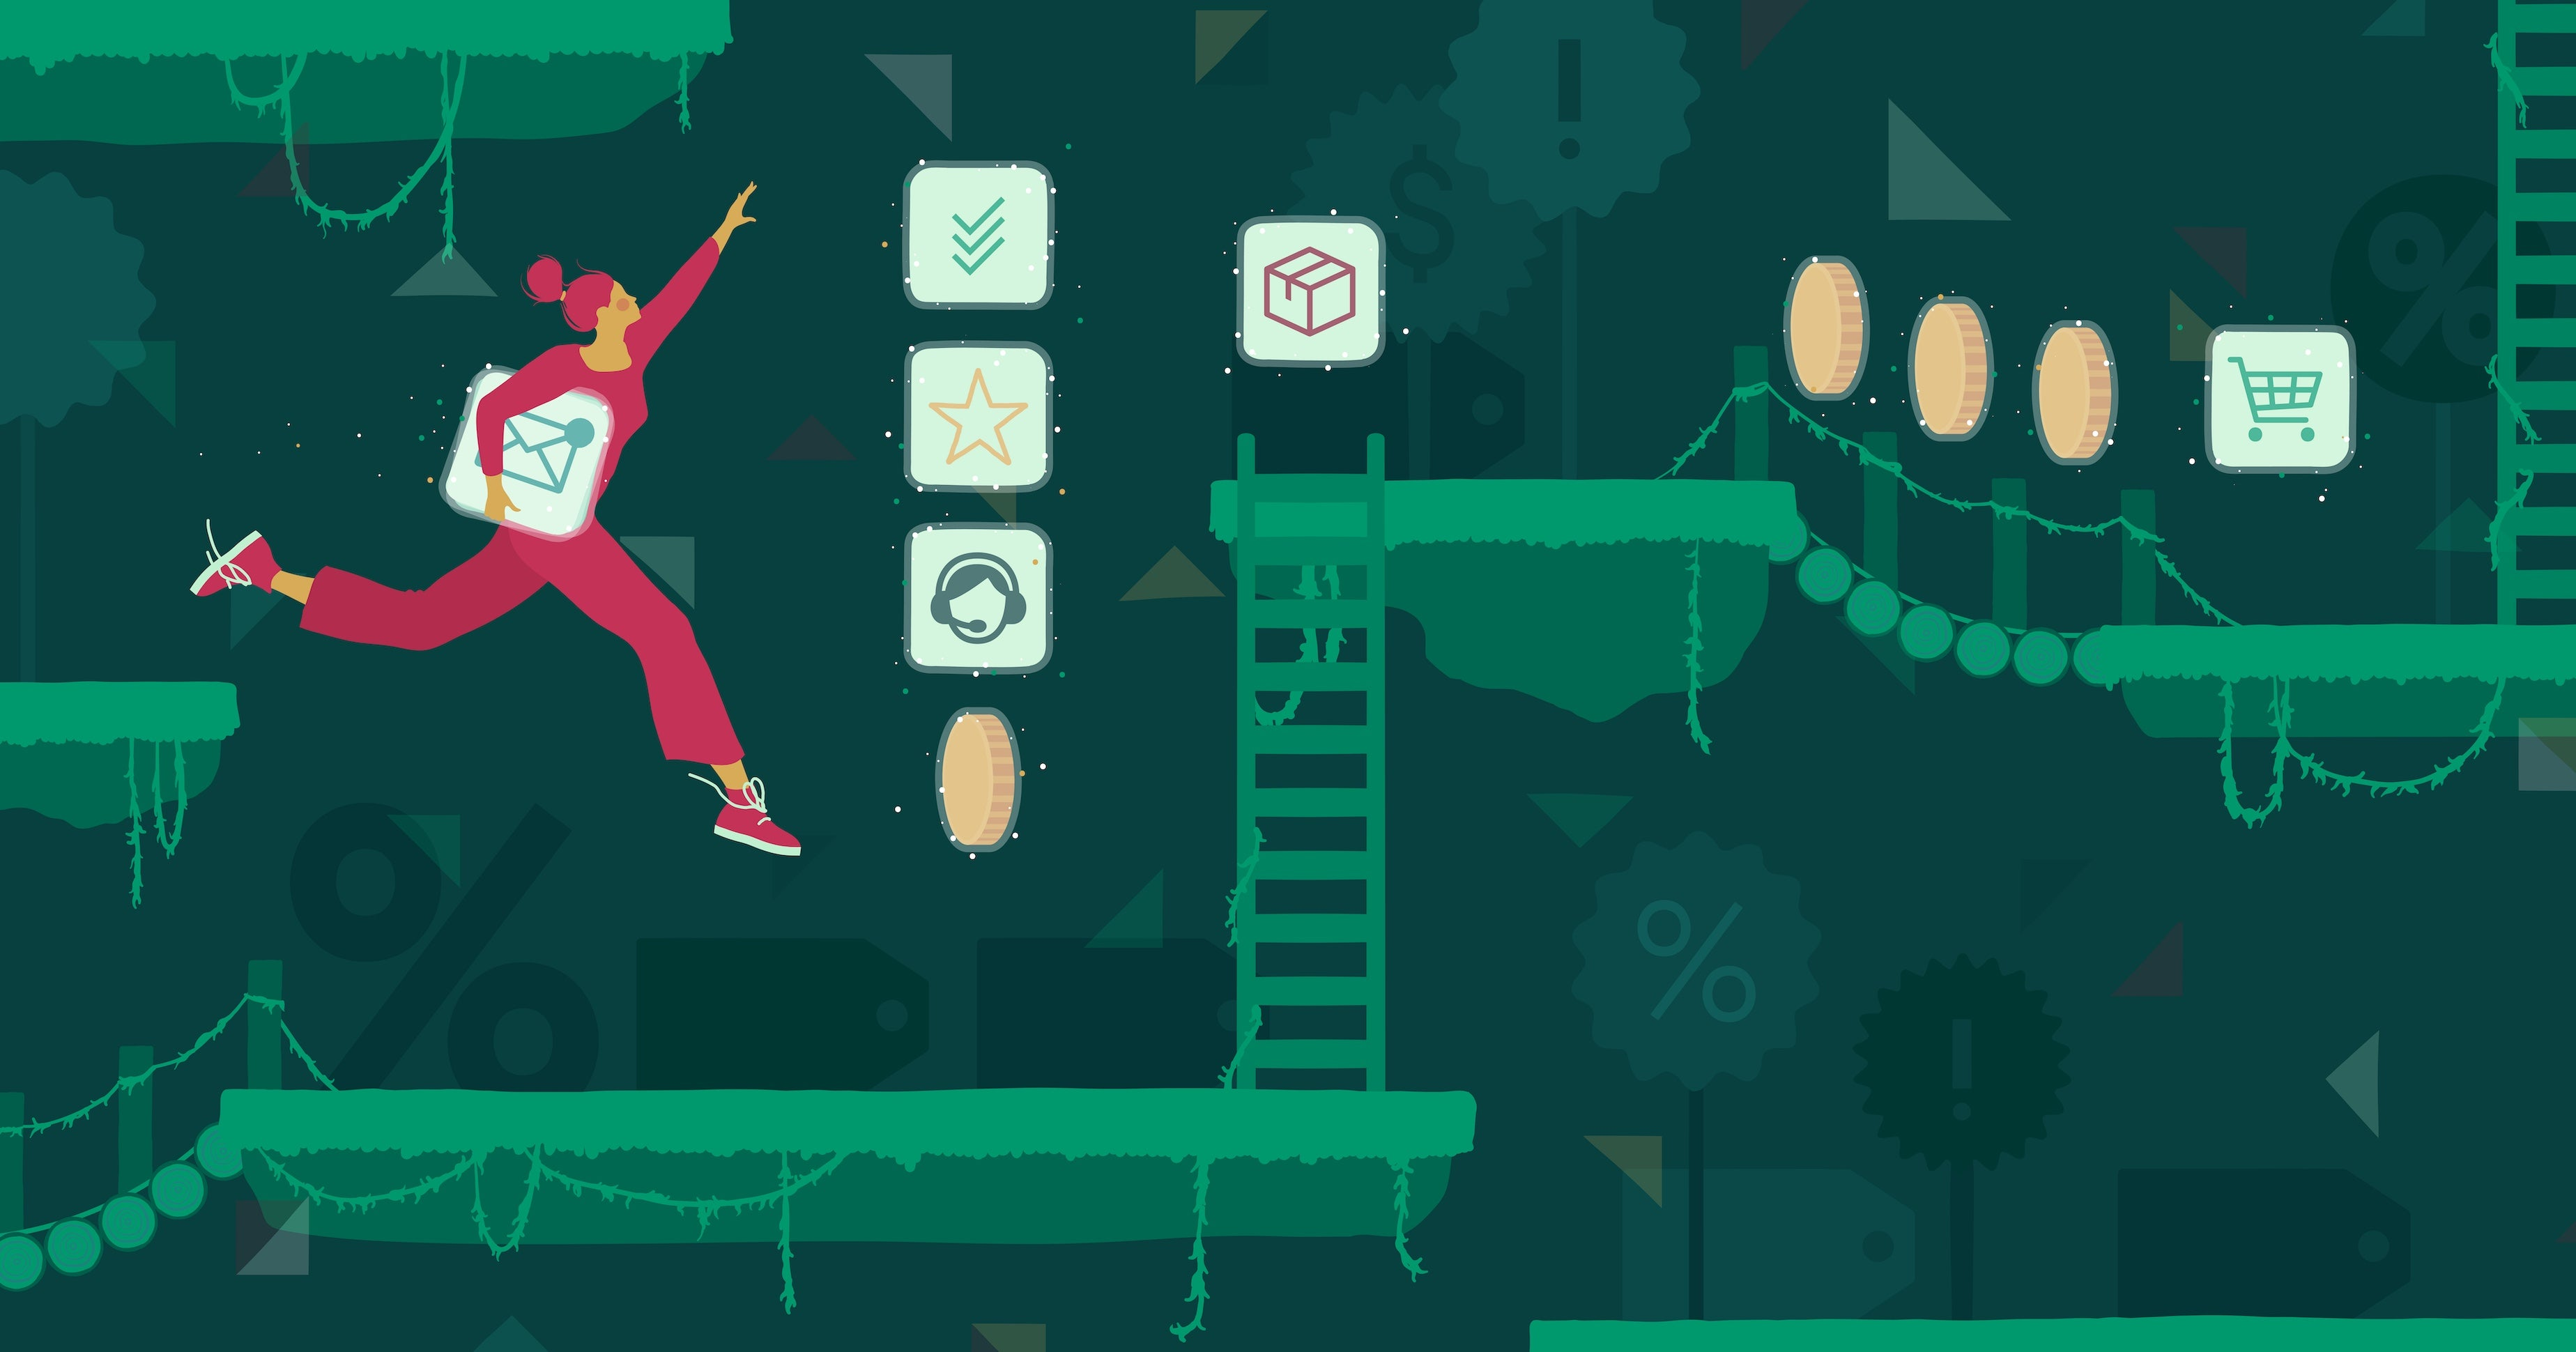 Illustration of a woman navigating obstacles in a video game and collecting apps